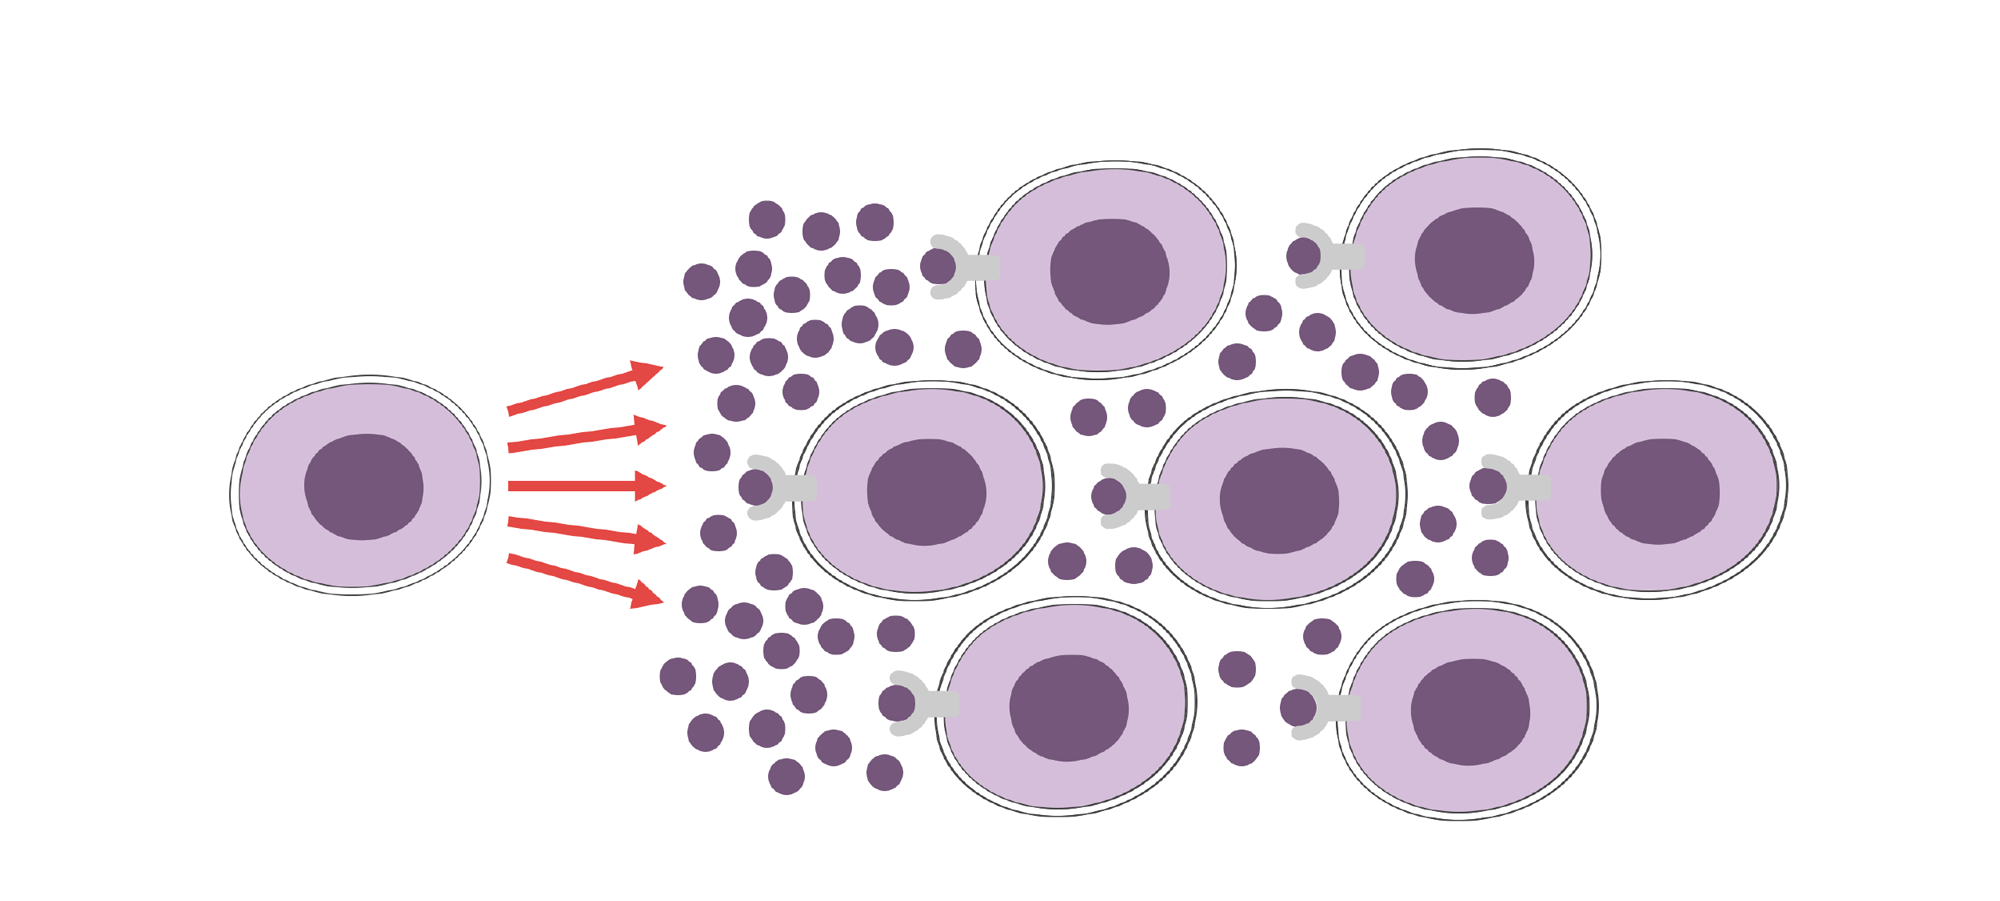 Cytokine storm with one cell releasing cytokines and activating too many cells. Illustration.